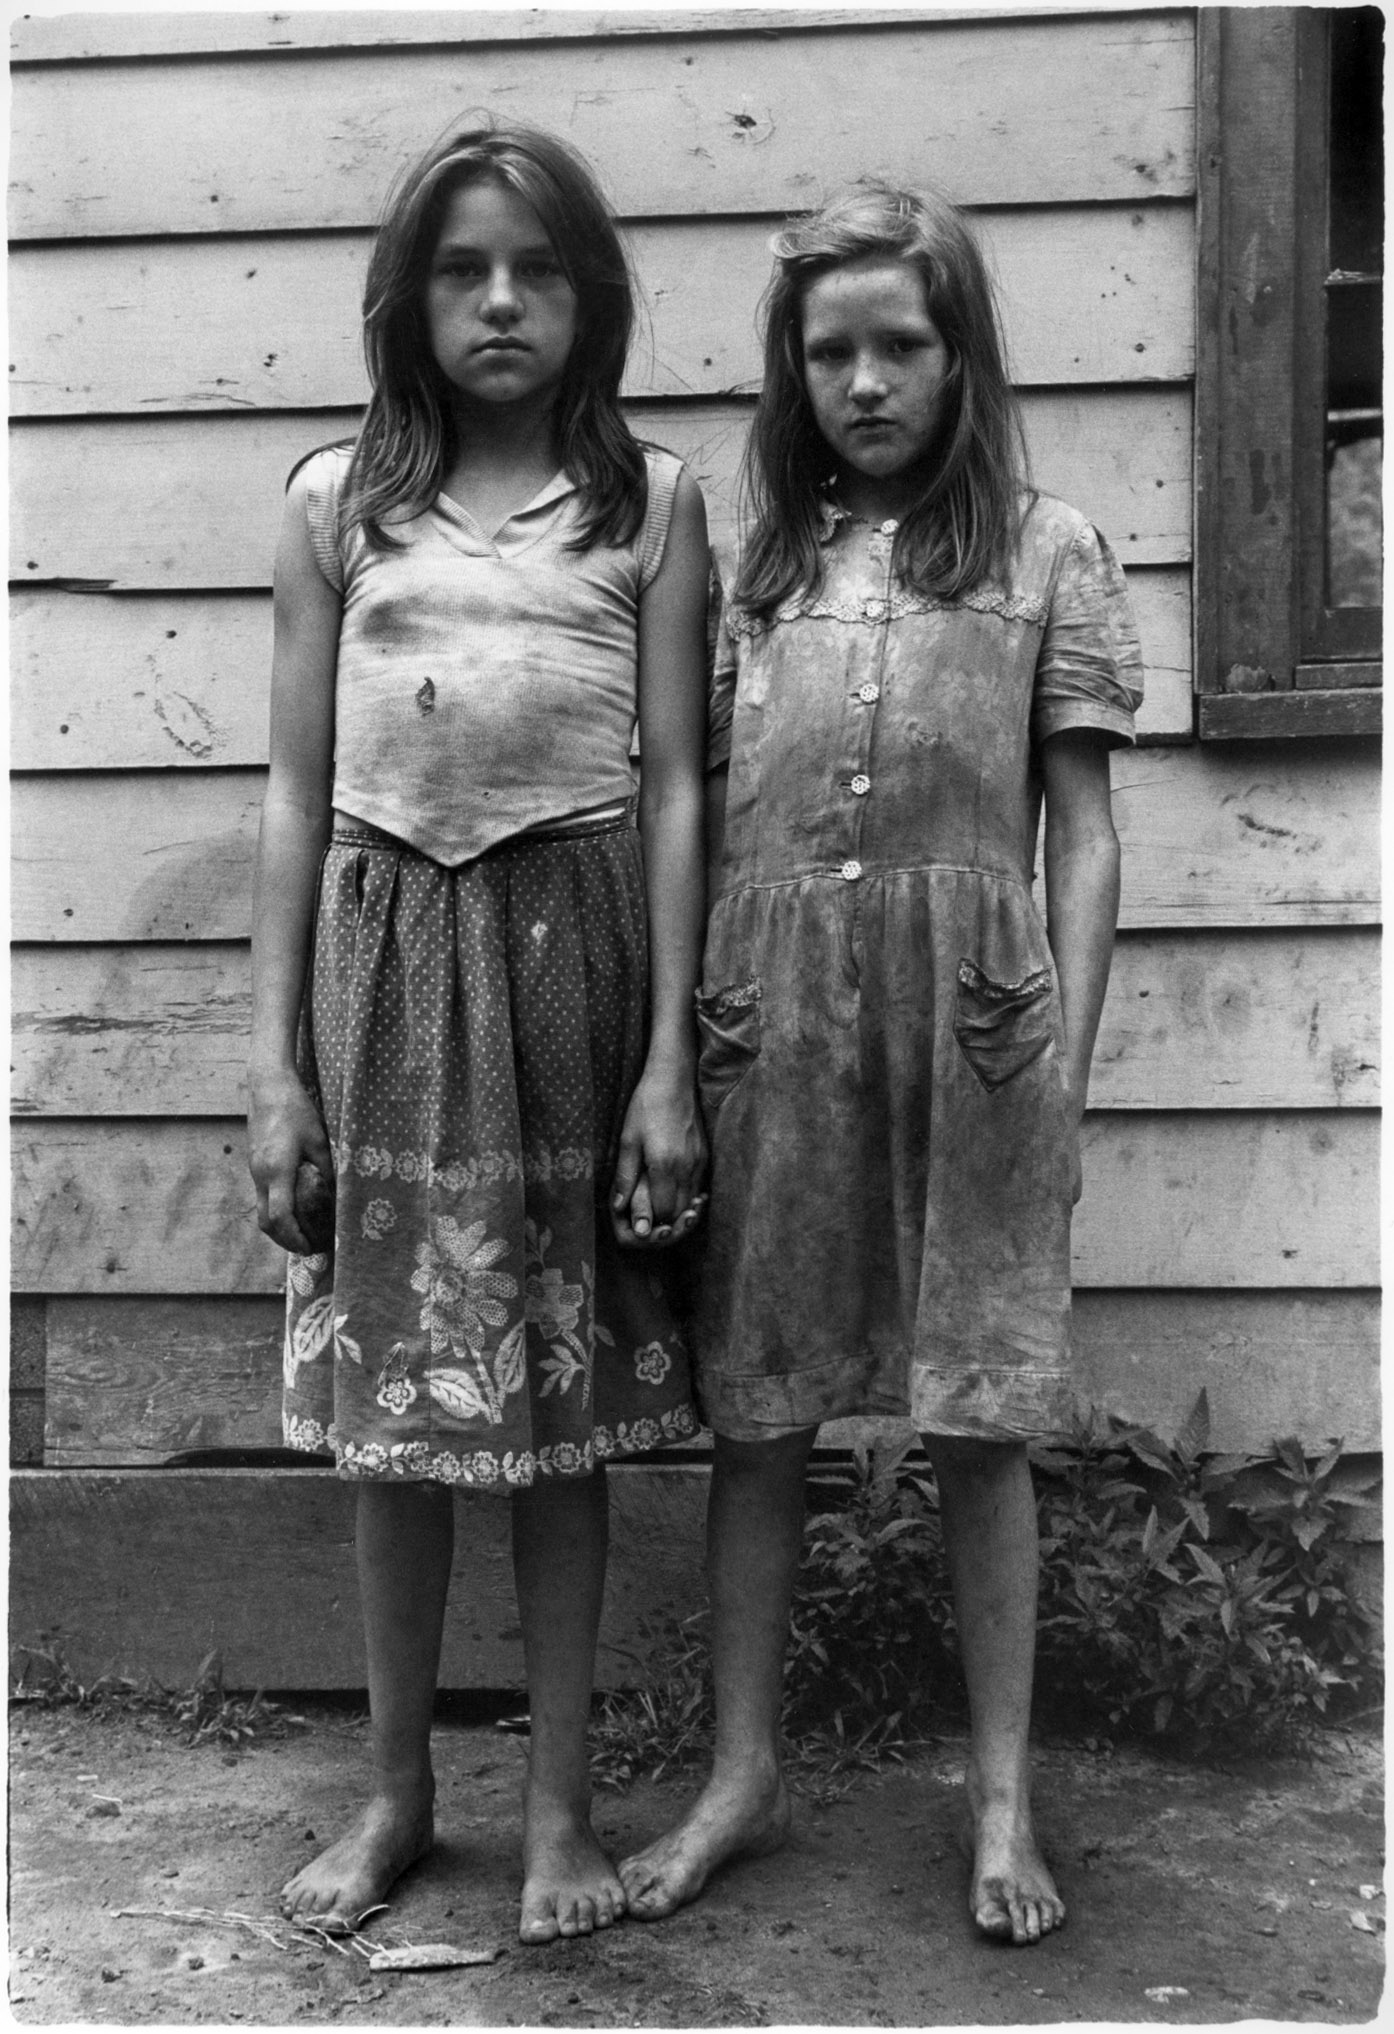 """Two girls with dirty clothes holding hands"" - William Gedney, 1964"